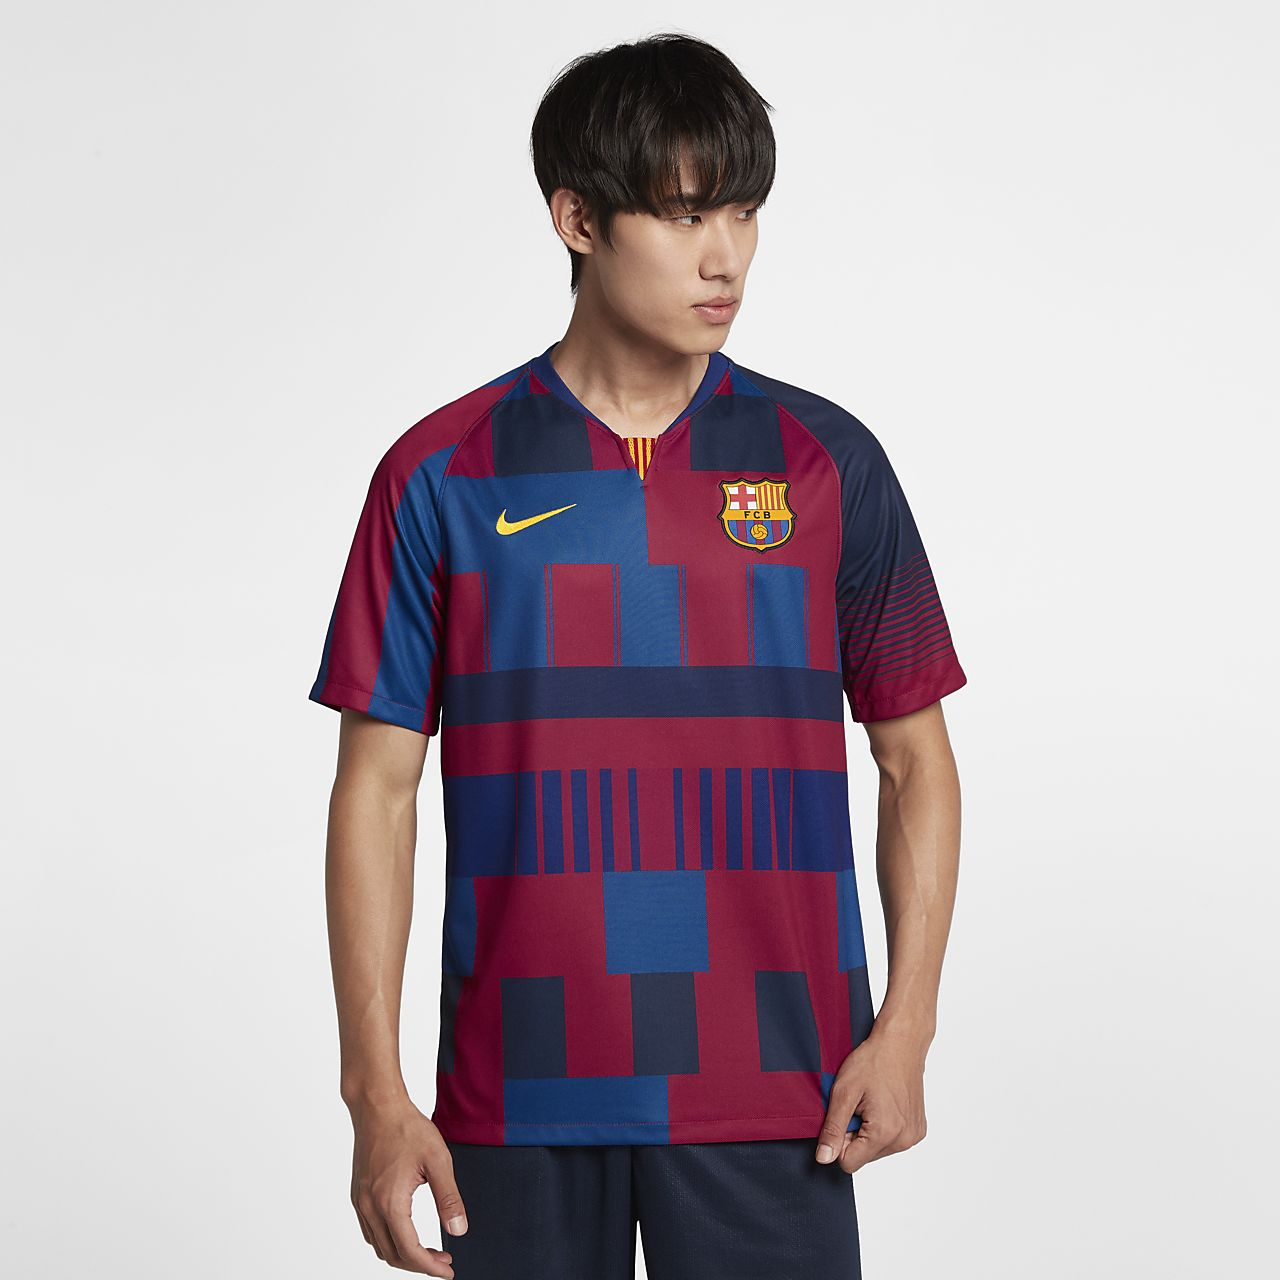 0930982e3 FC Barcelona 20th Anniversary Men's Shirt. Nike.com AE